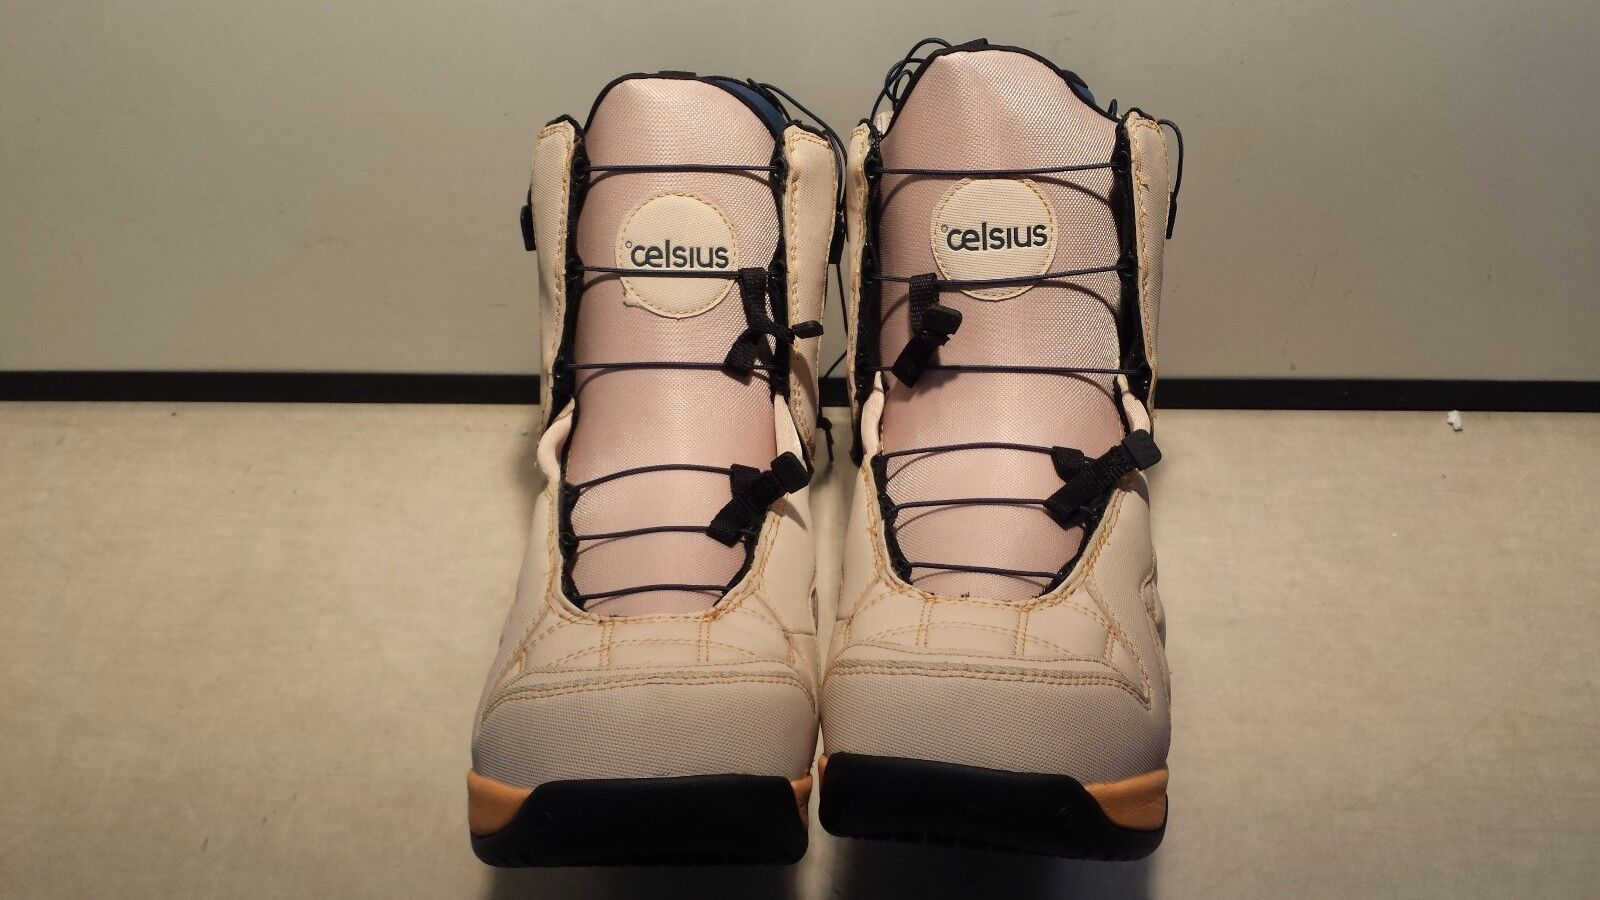 Brand New Women's Celsius Cosmo Speed Lace Beige Snowboarding Boots - Size  10